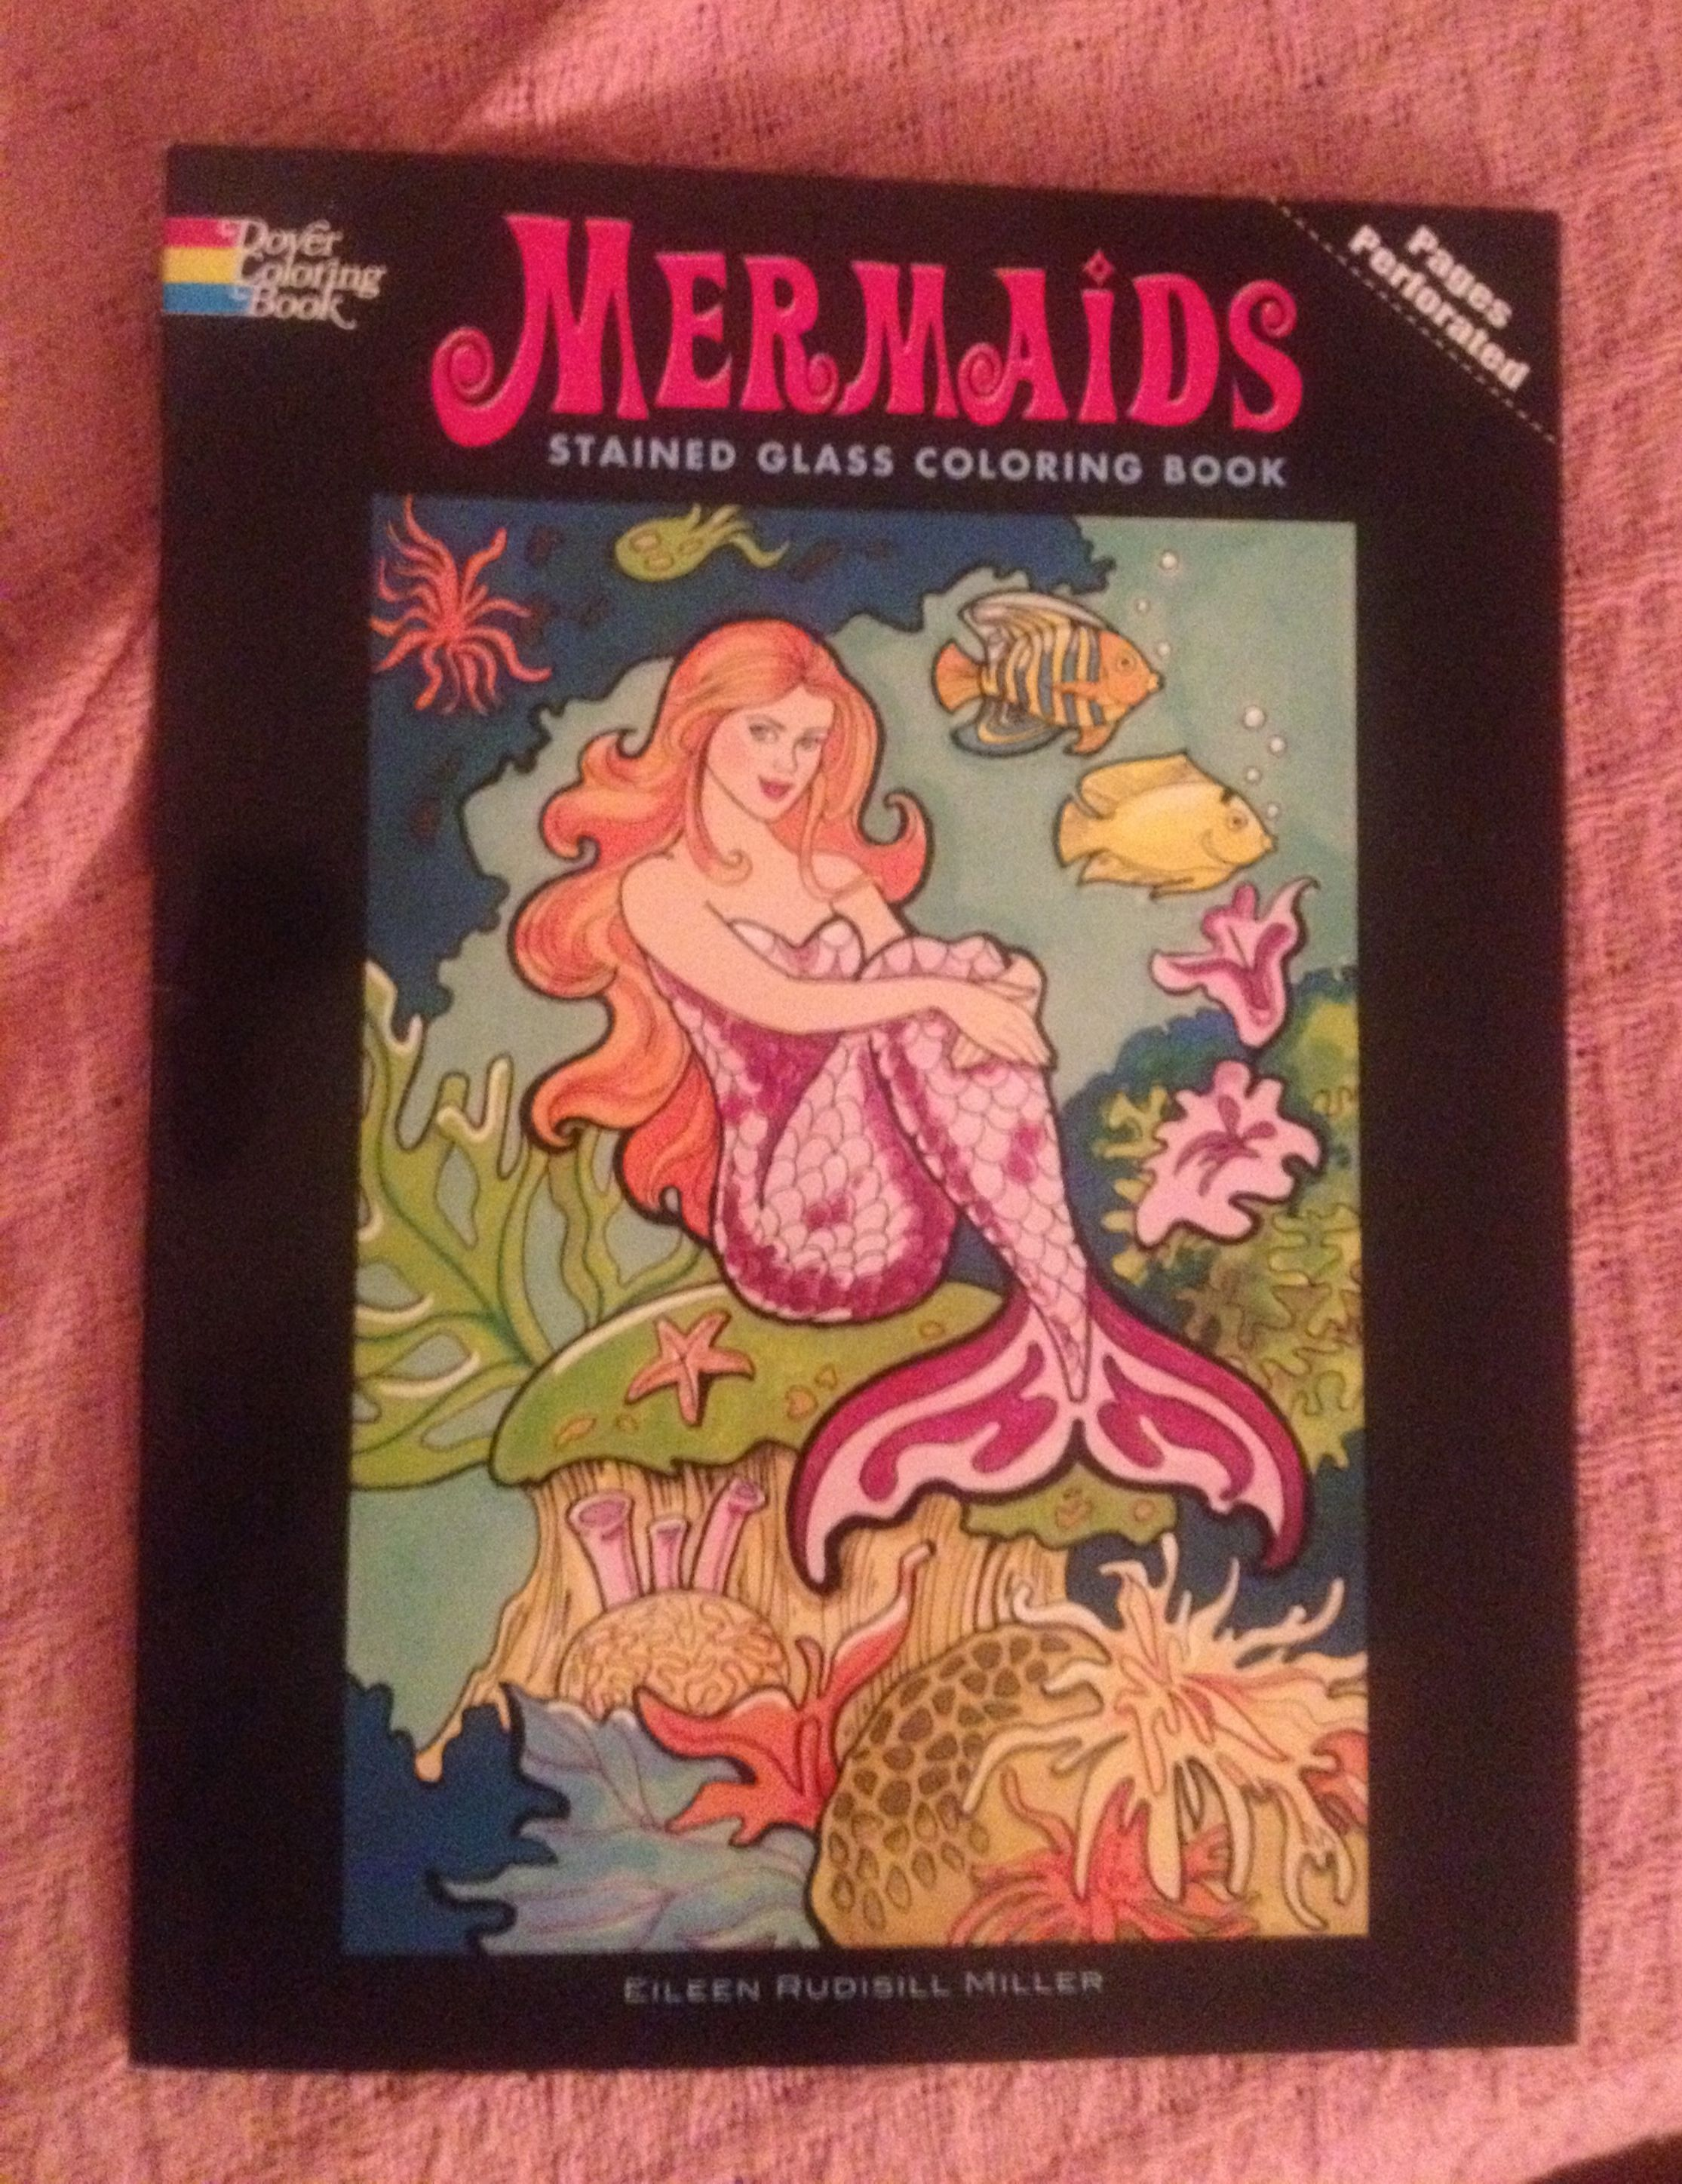 A Mermaid Coloring Book In My Care Package From Home Mermaid Coloring Book Coloring Books Mermaid Coloring